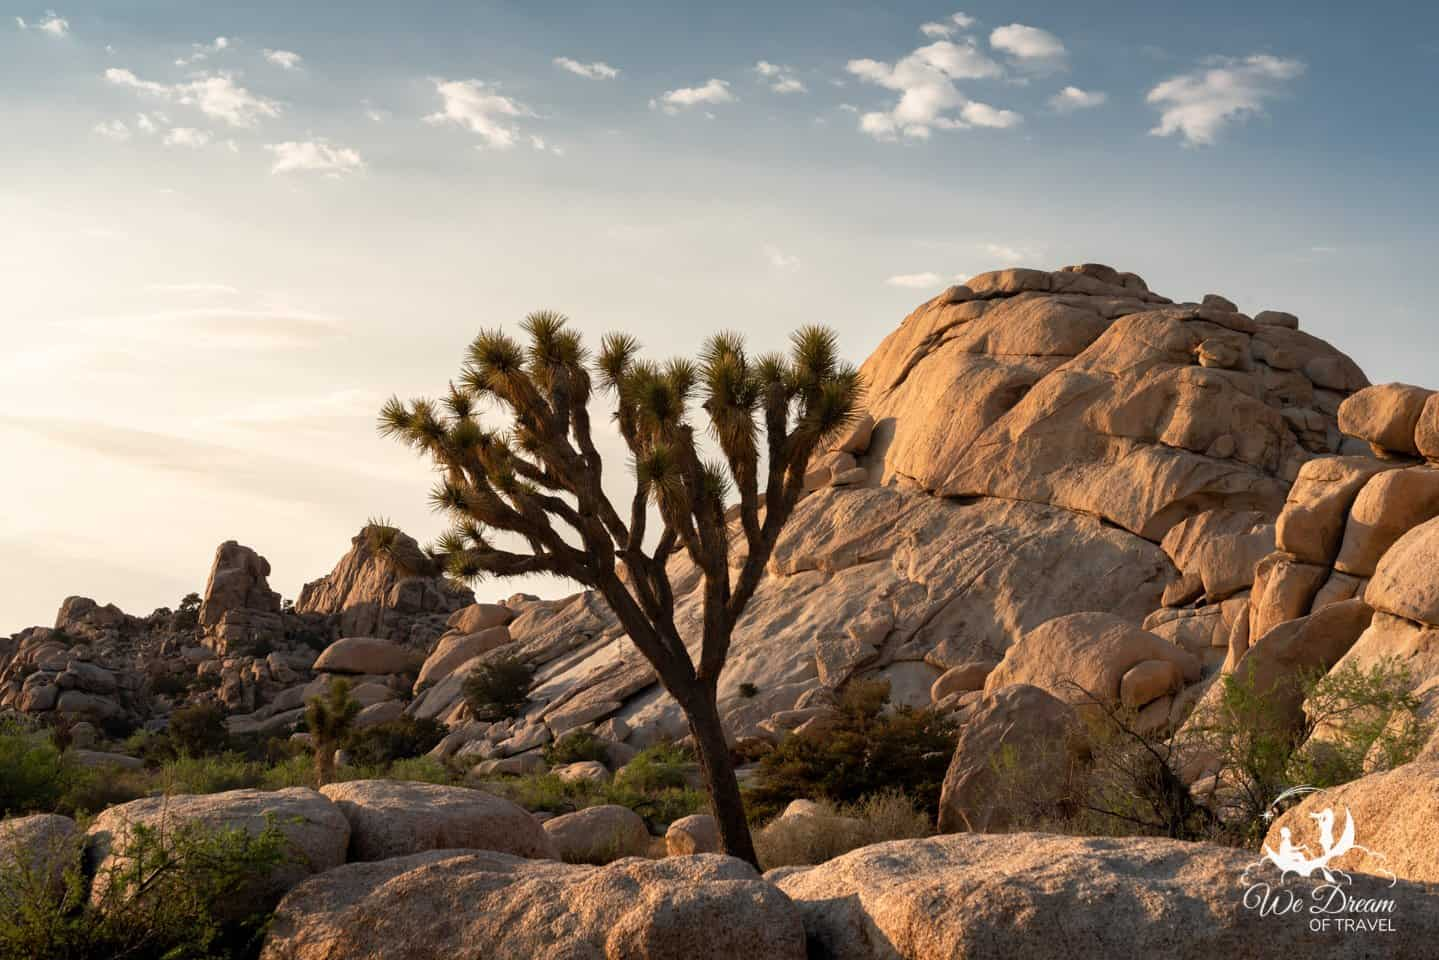 Golden hour photography from Joshua Tree National Park.